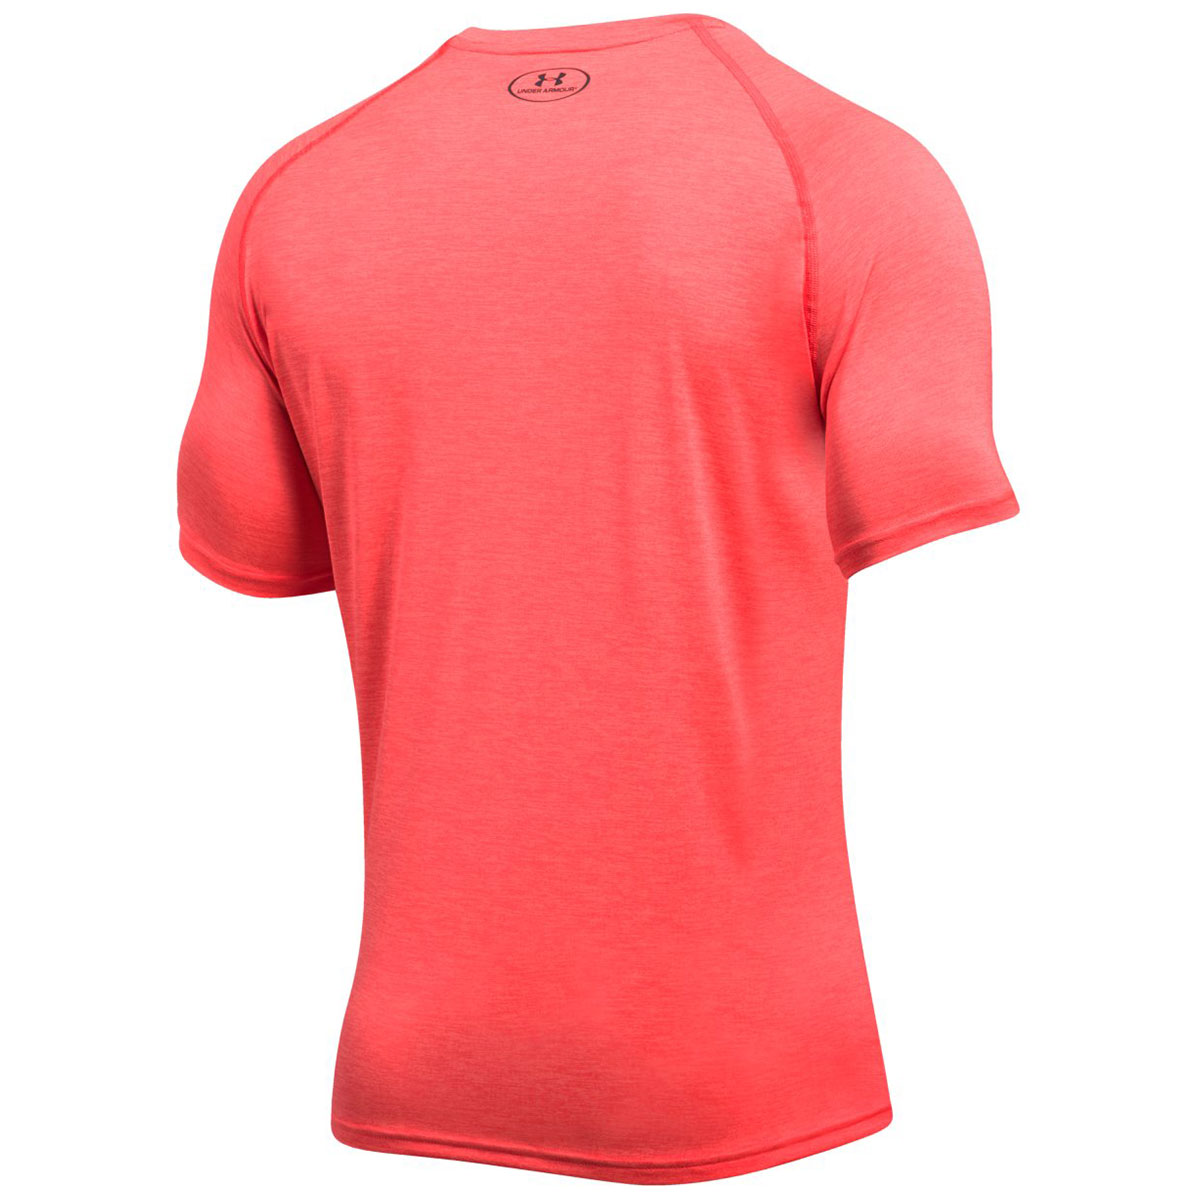 Under Armour Mens Ua Tech Ss T Shirt Heatgear Short Sleeve